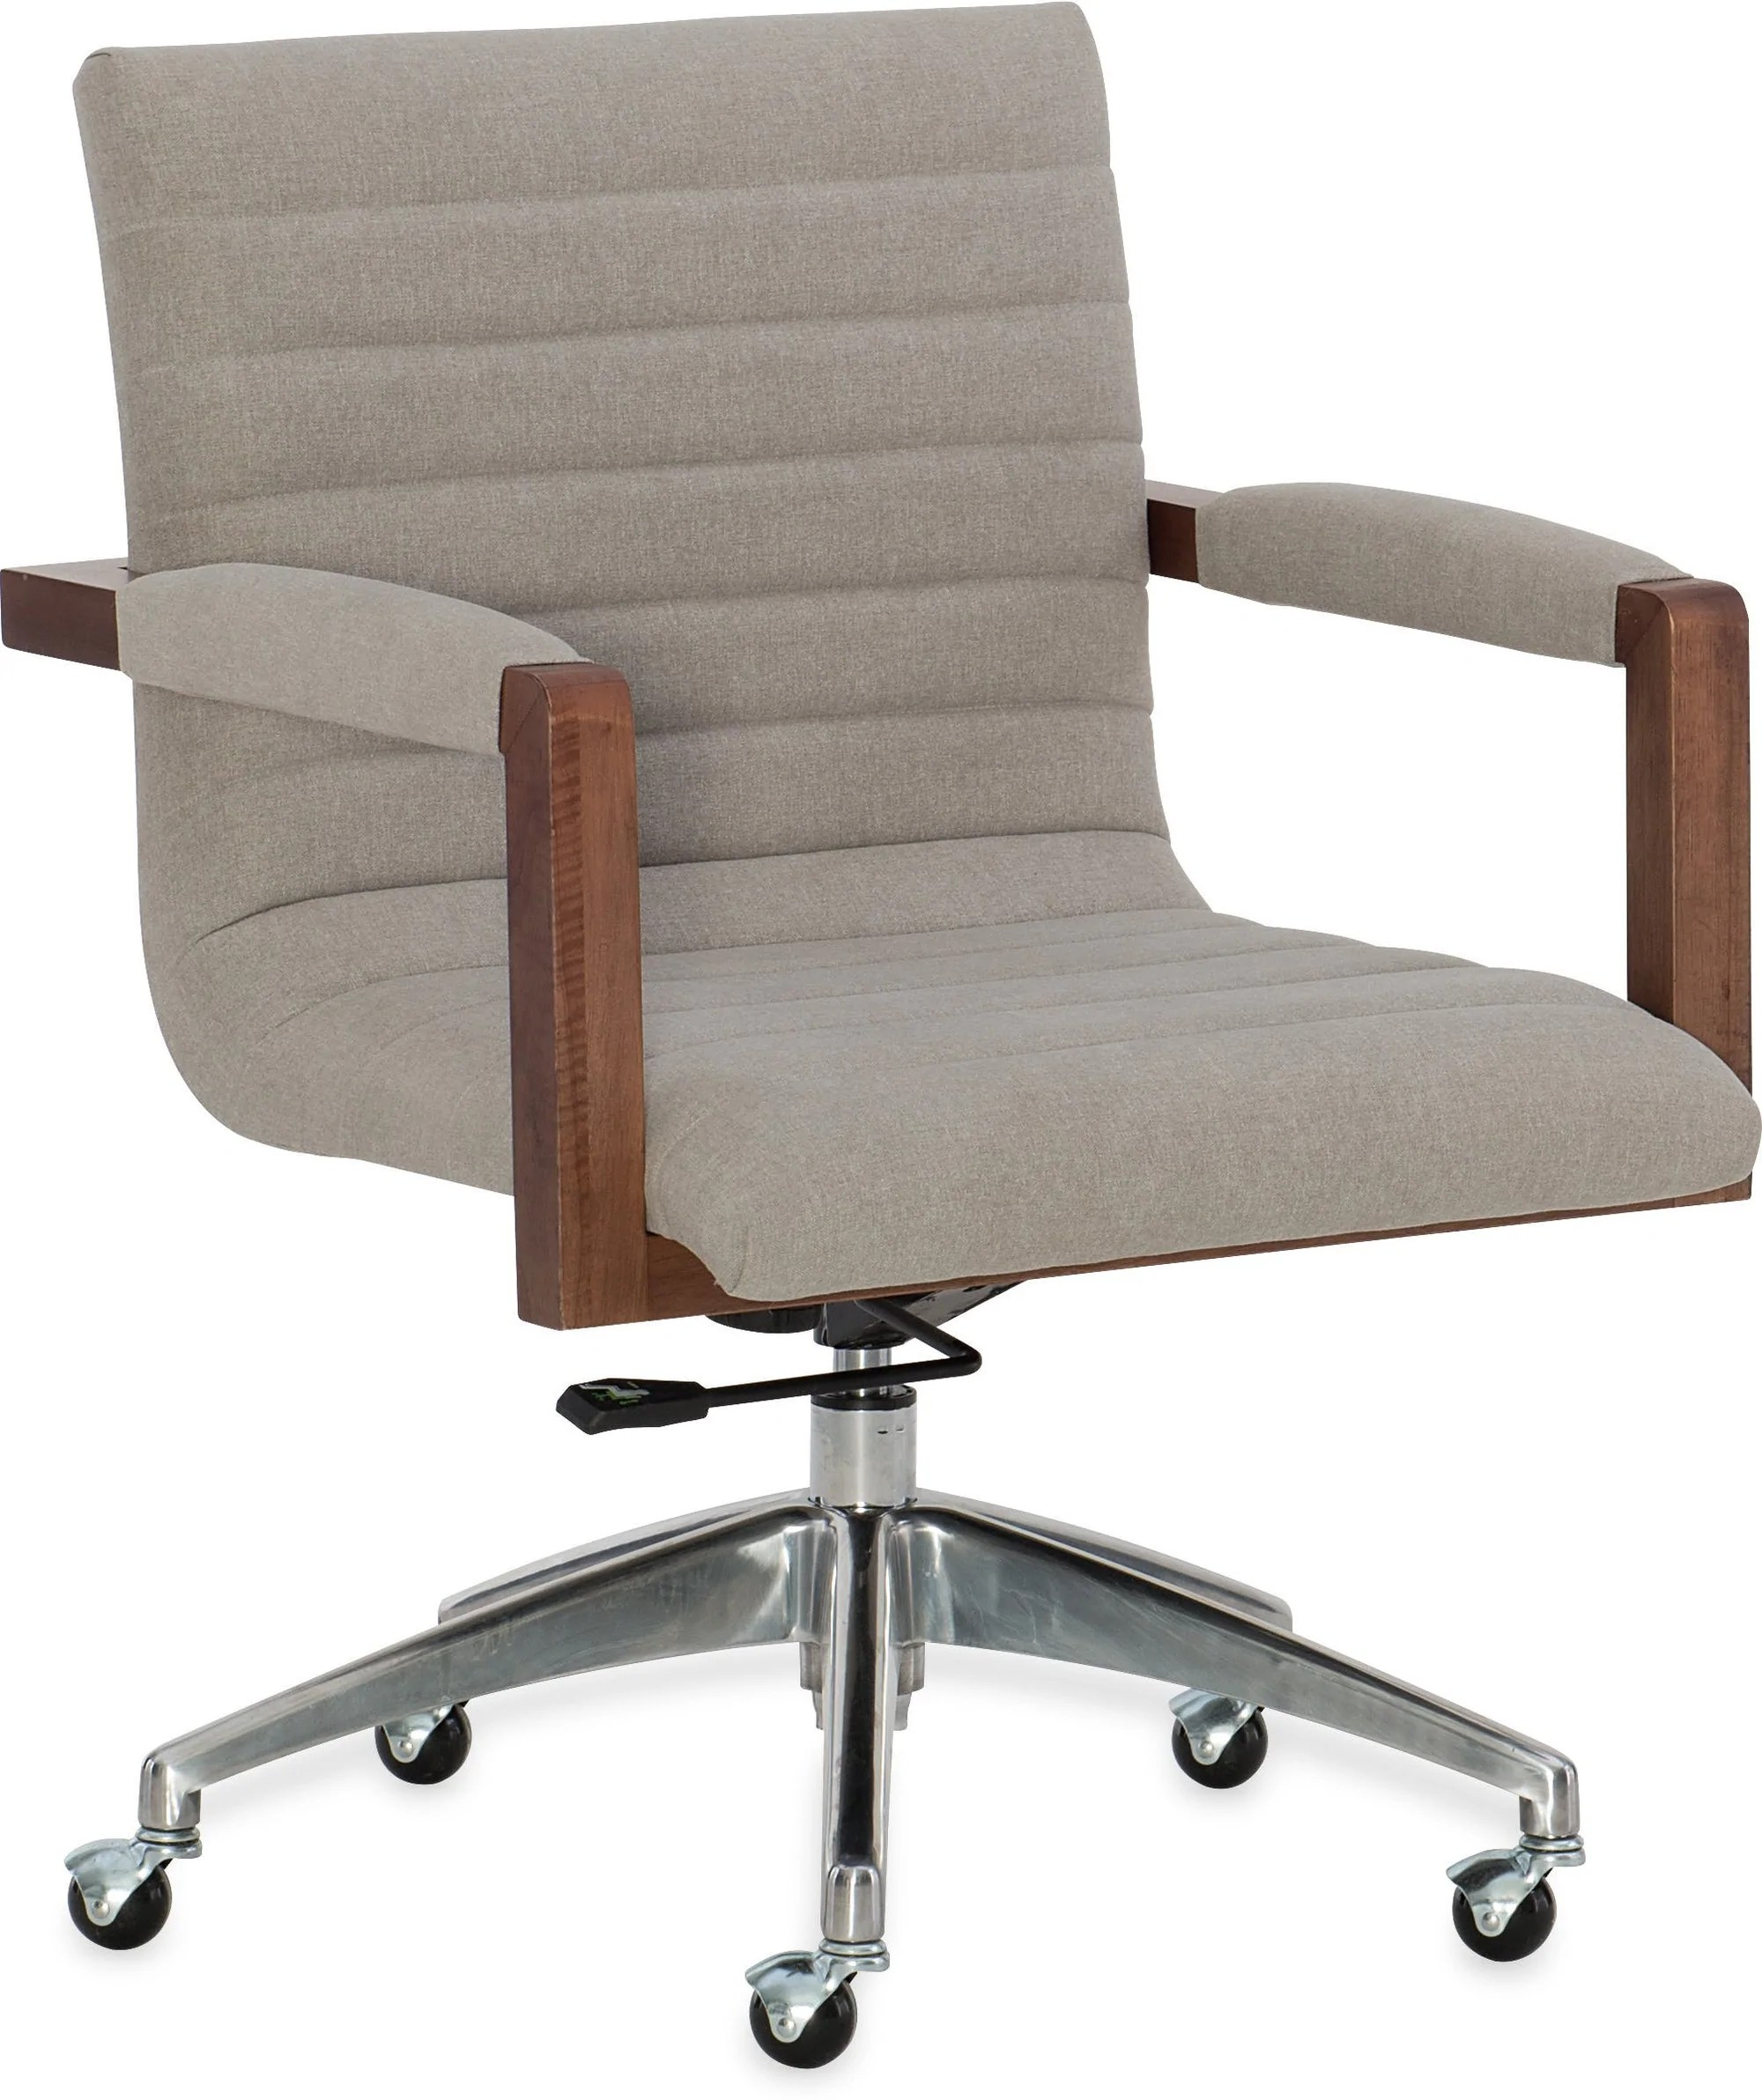 desk chair edmonton office with footrest hooker furniture transitional 1650 30220 mwd home the is available in